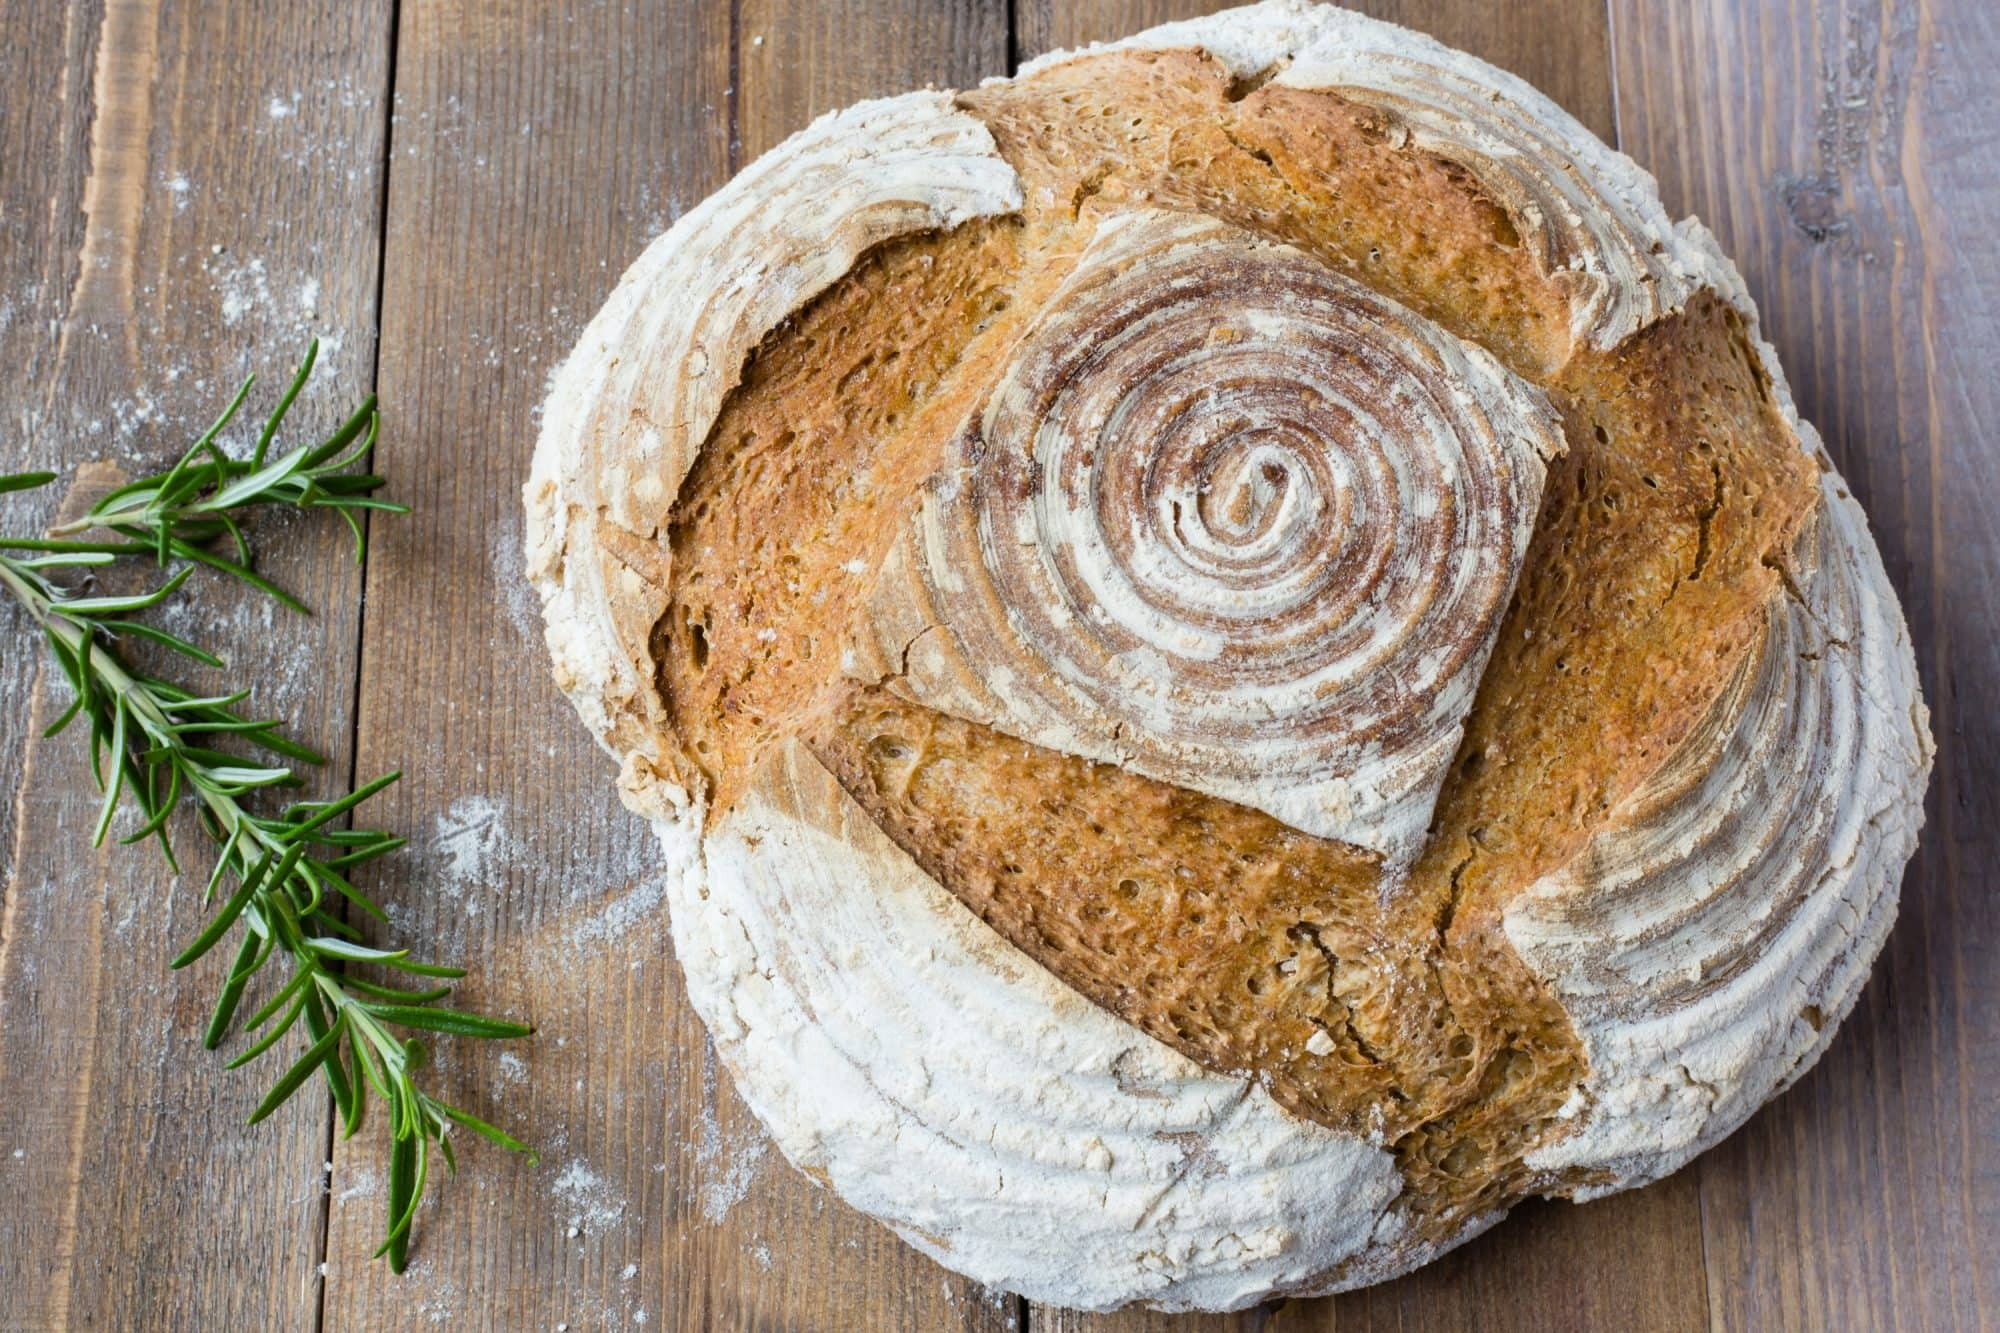 Thermomix Sourdough Masterclass